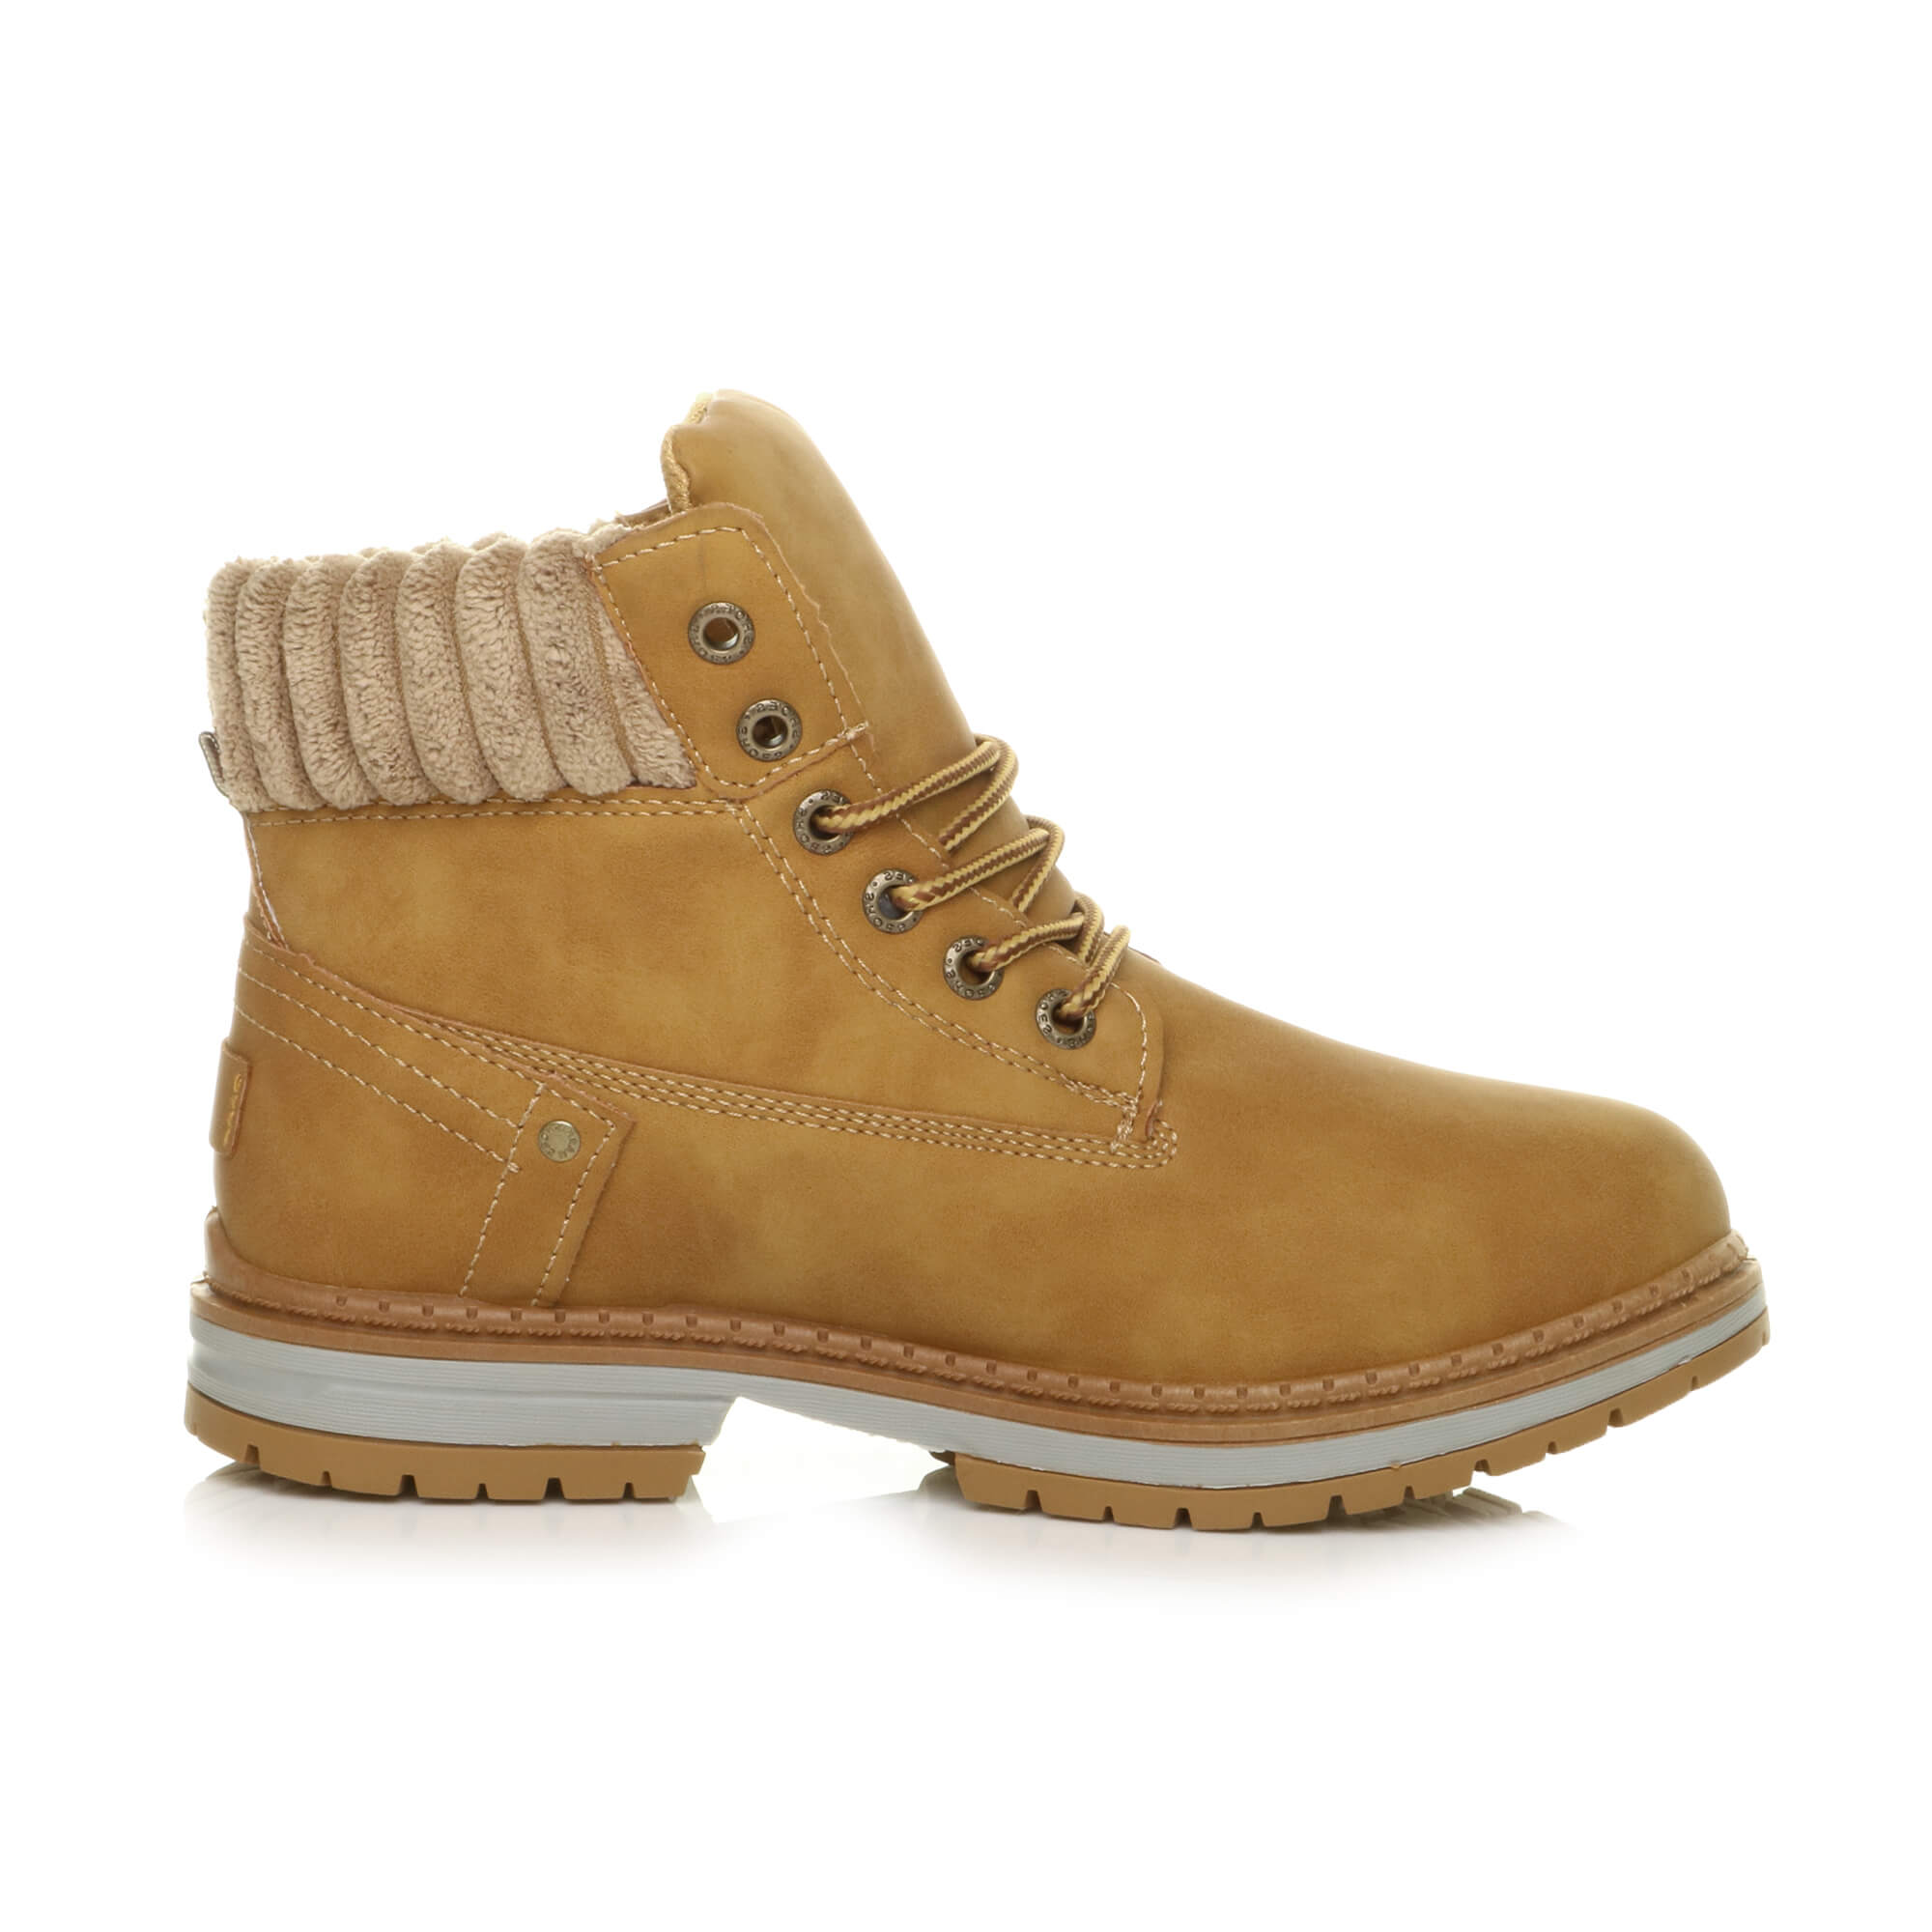 WOMENS-LADIES-FLEECE-COLLAR-WINTER-LACE-UP-WORK-STYLE-BIKER-COMBAT-ANKLE-BOOTS